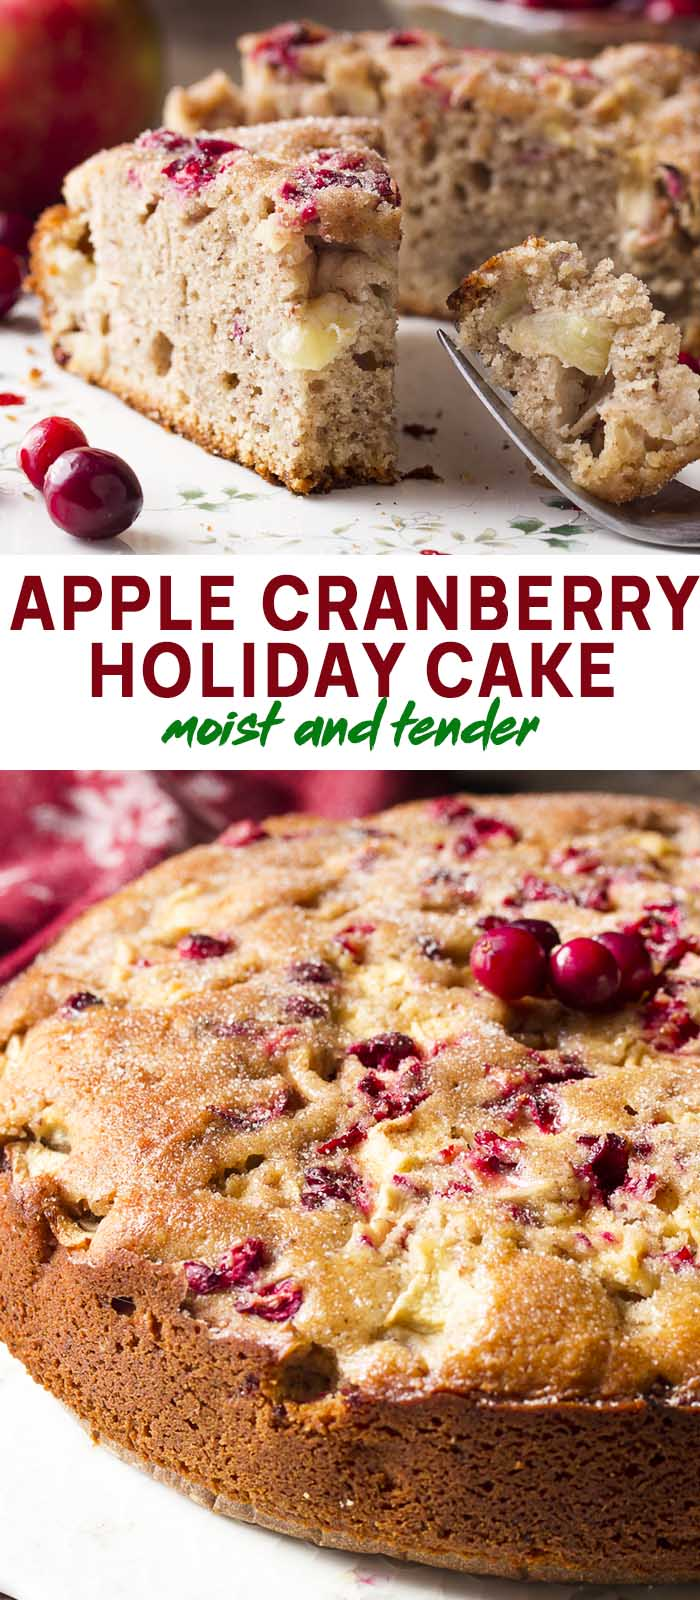 Whole cake and a slice with text overlay - Apple Cranberry Holiday Cake.